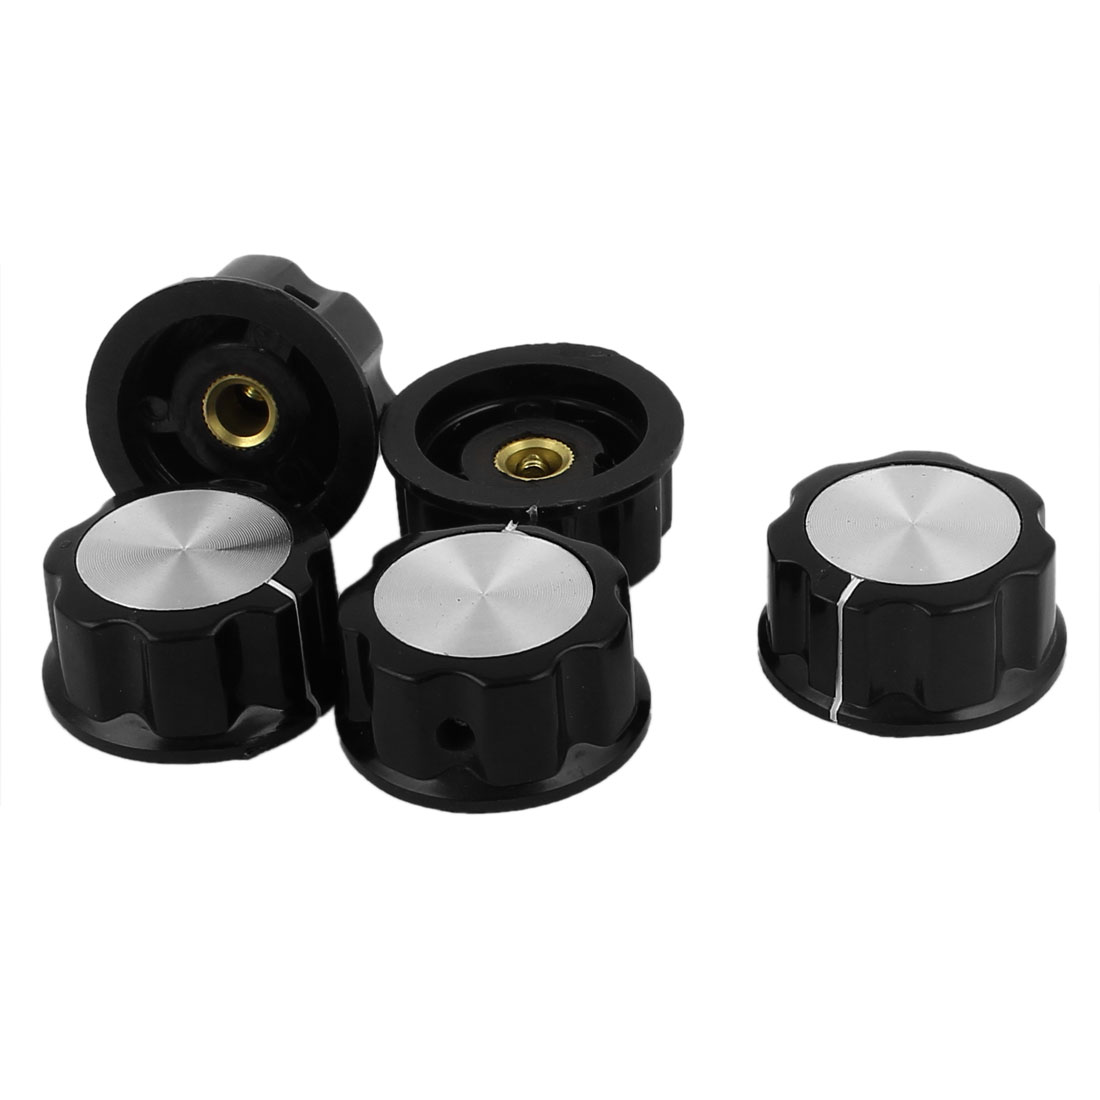 Replacement 30mm Top 6mm Shaft Insert Dia Potentiometer Rotary Knobs 5pcs